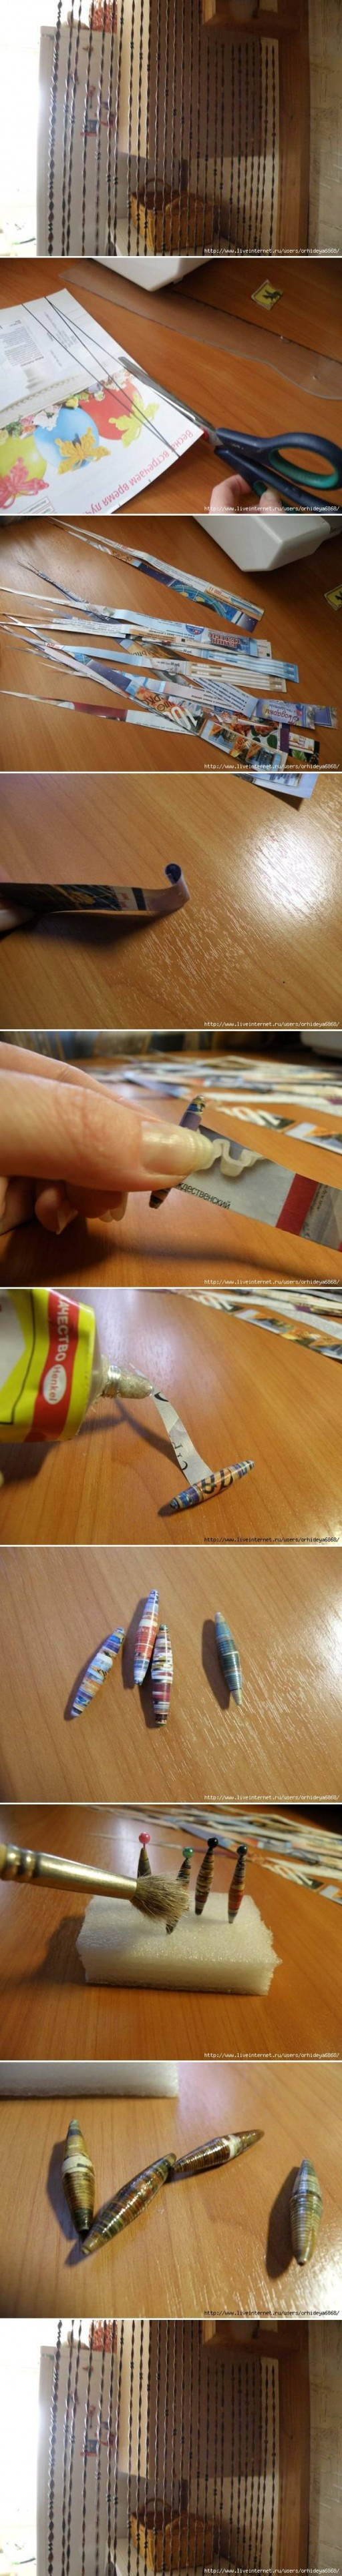 How to make Newspaper Beads Curtain step by step DIY tutorial instructions